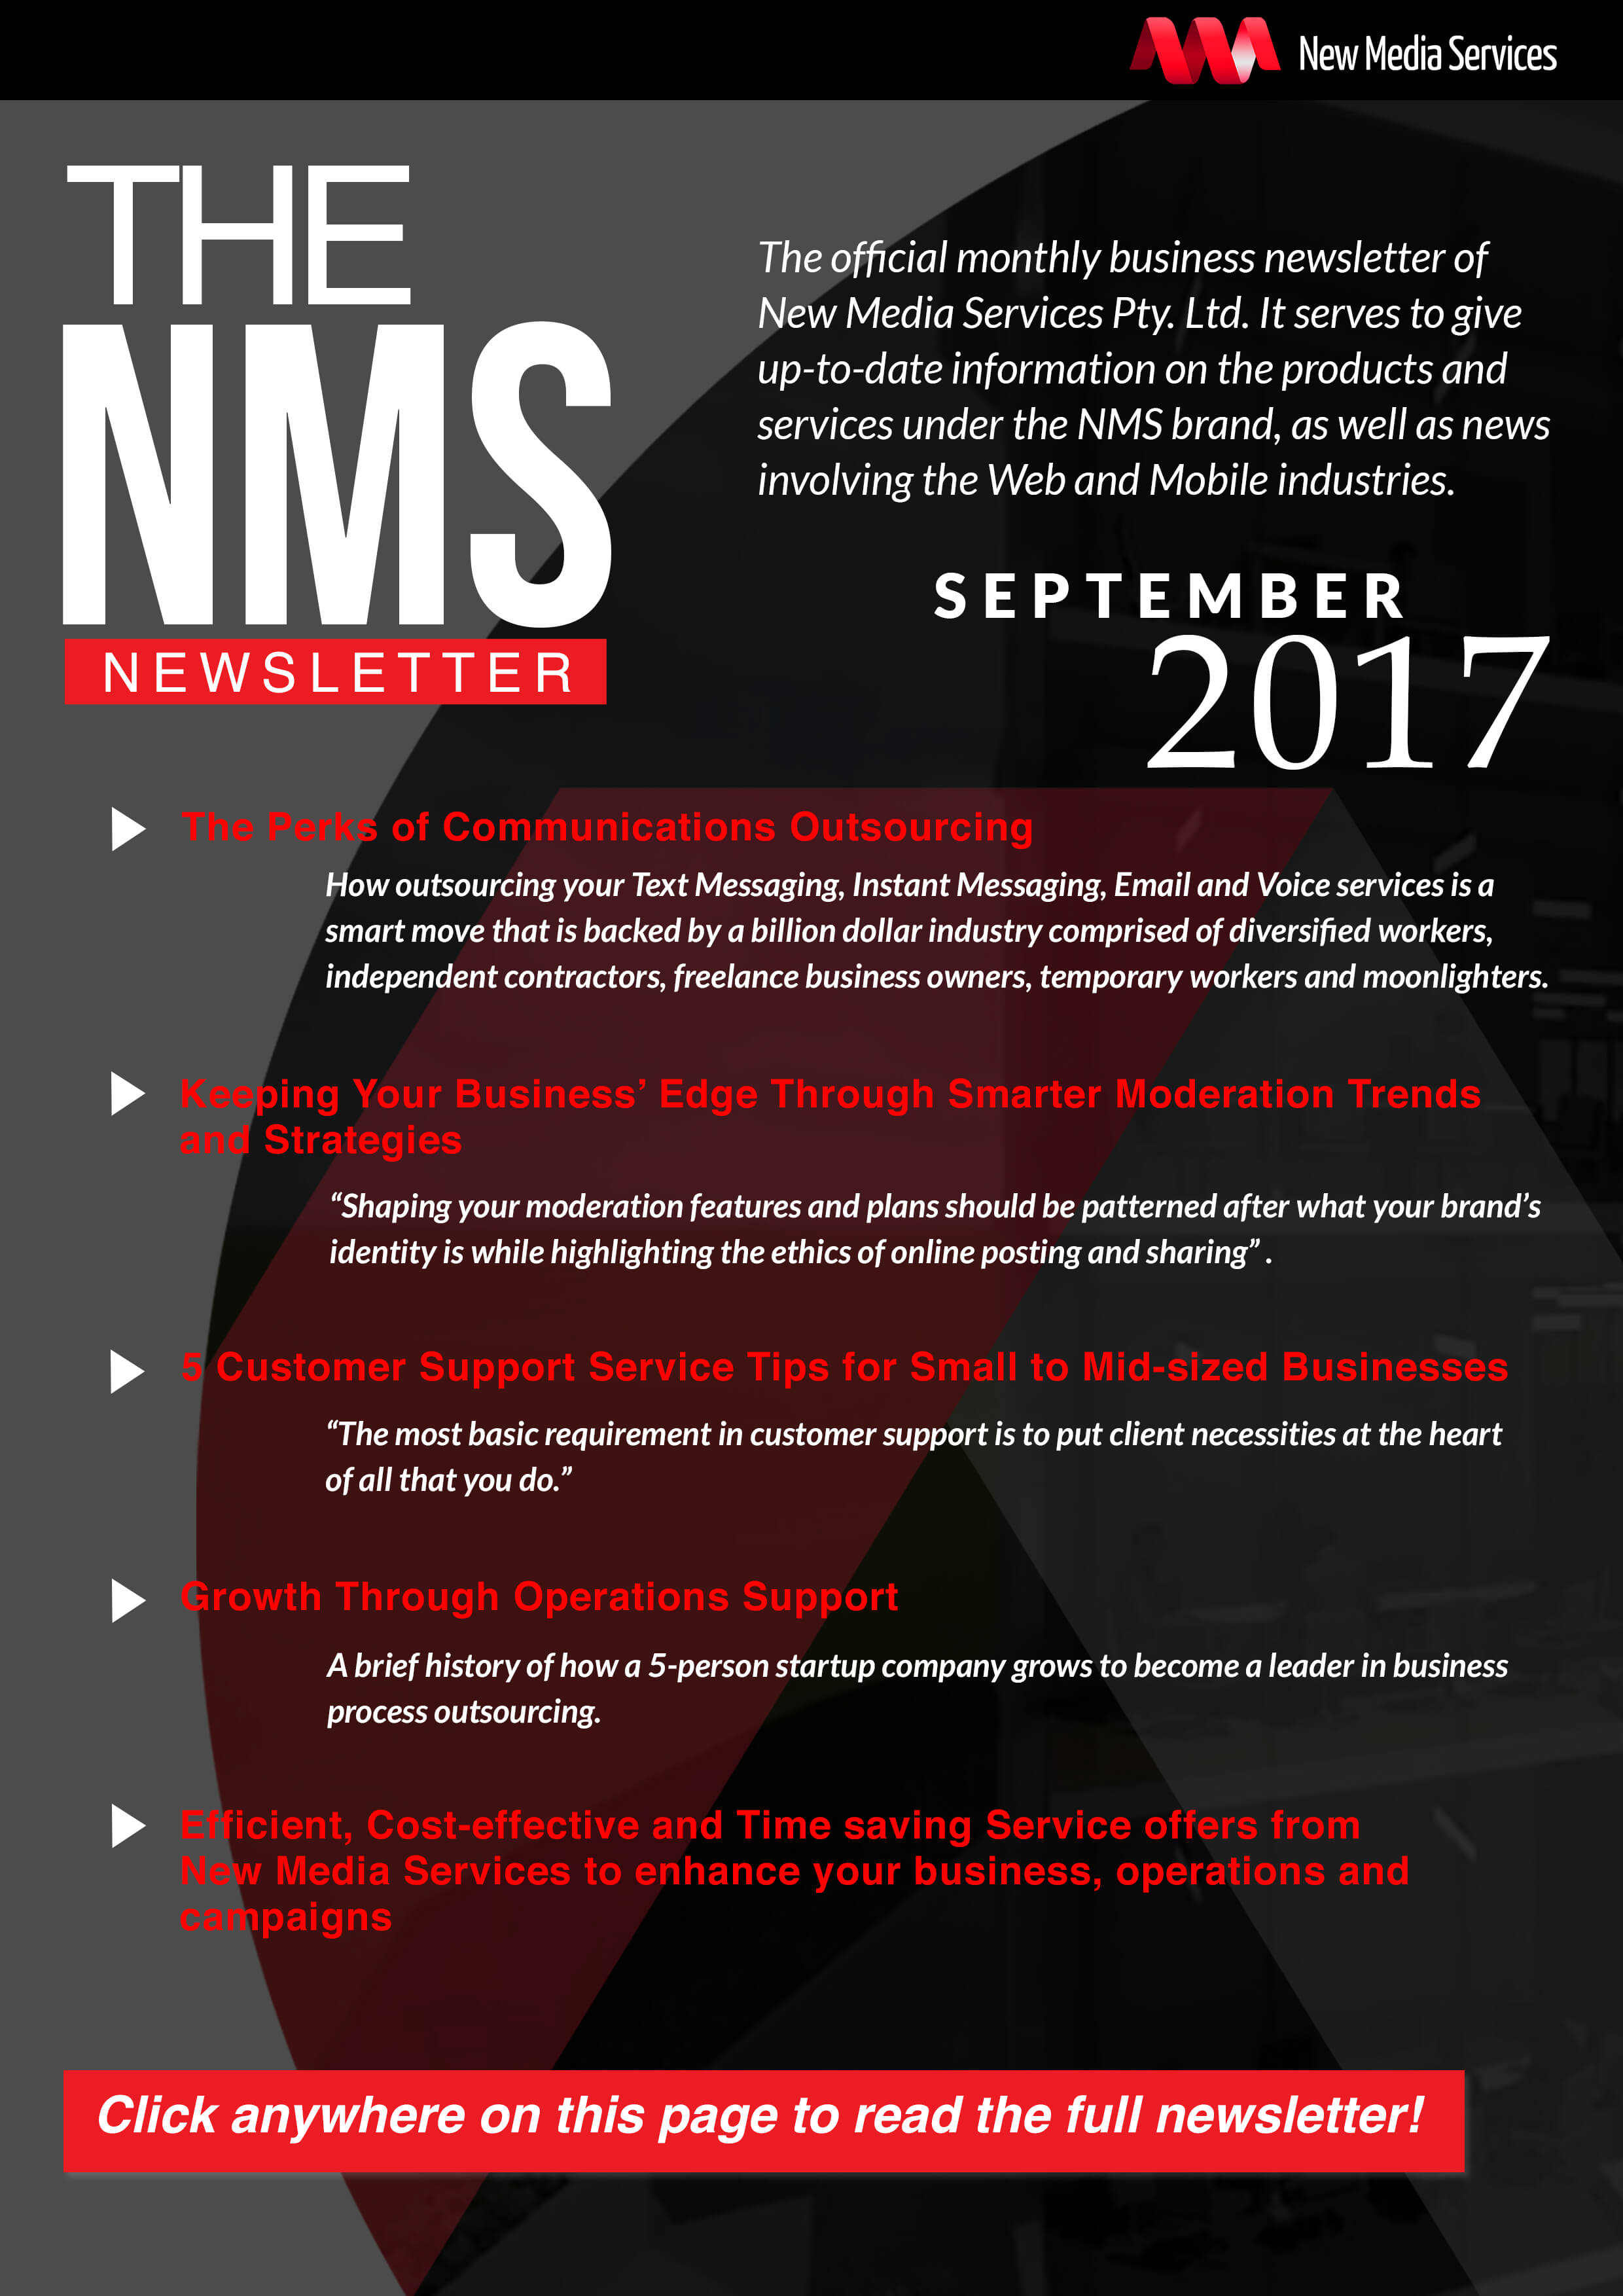 NMS Newsletter banner for September 2017